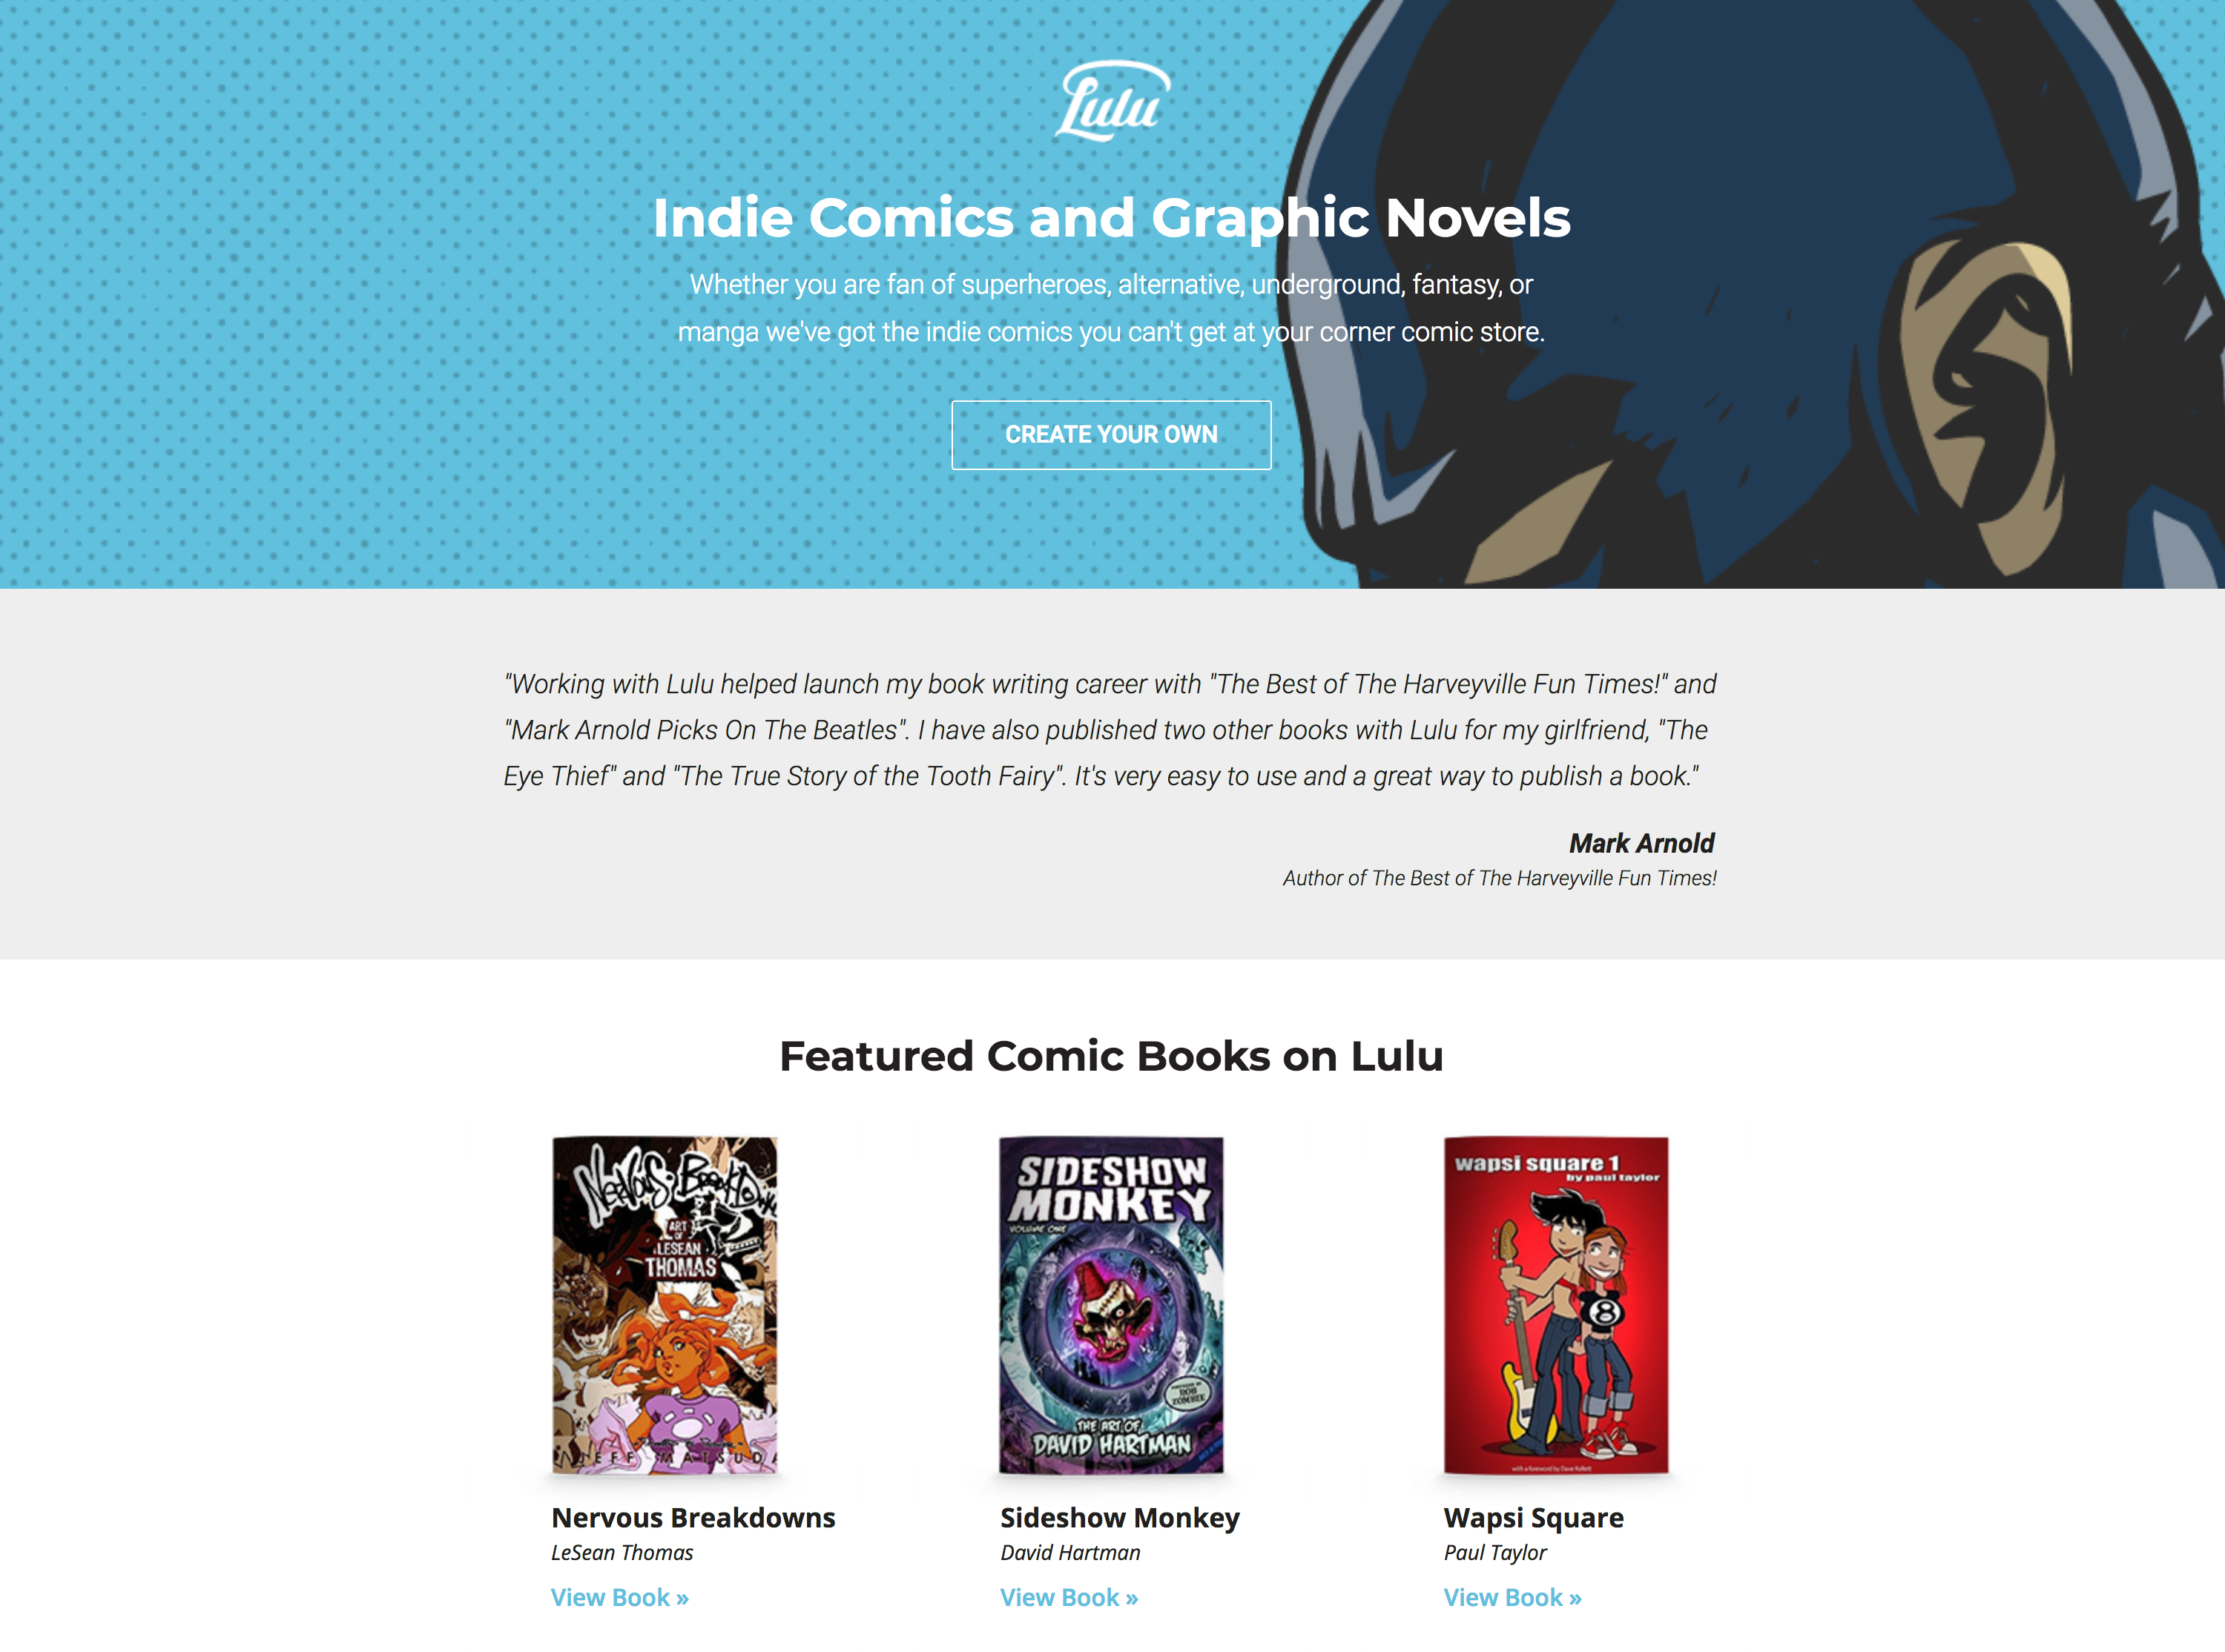 Print-On-Demand Comics